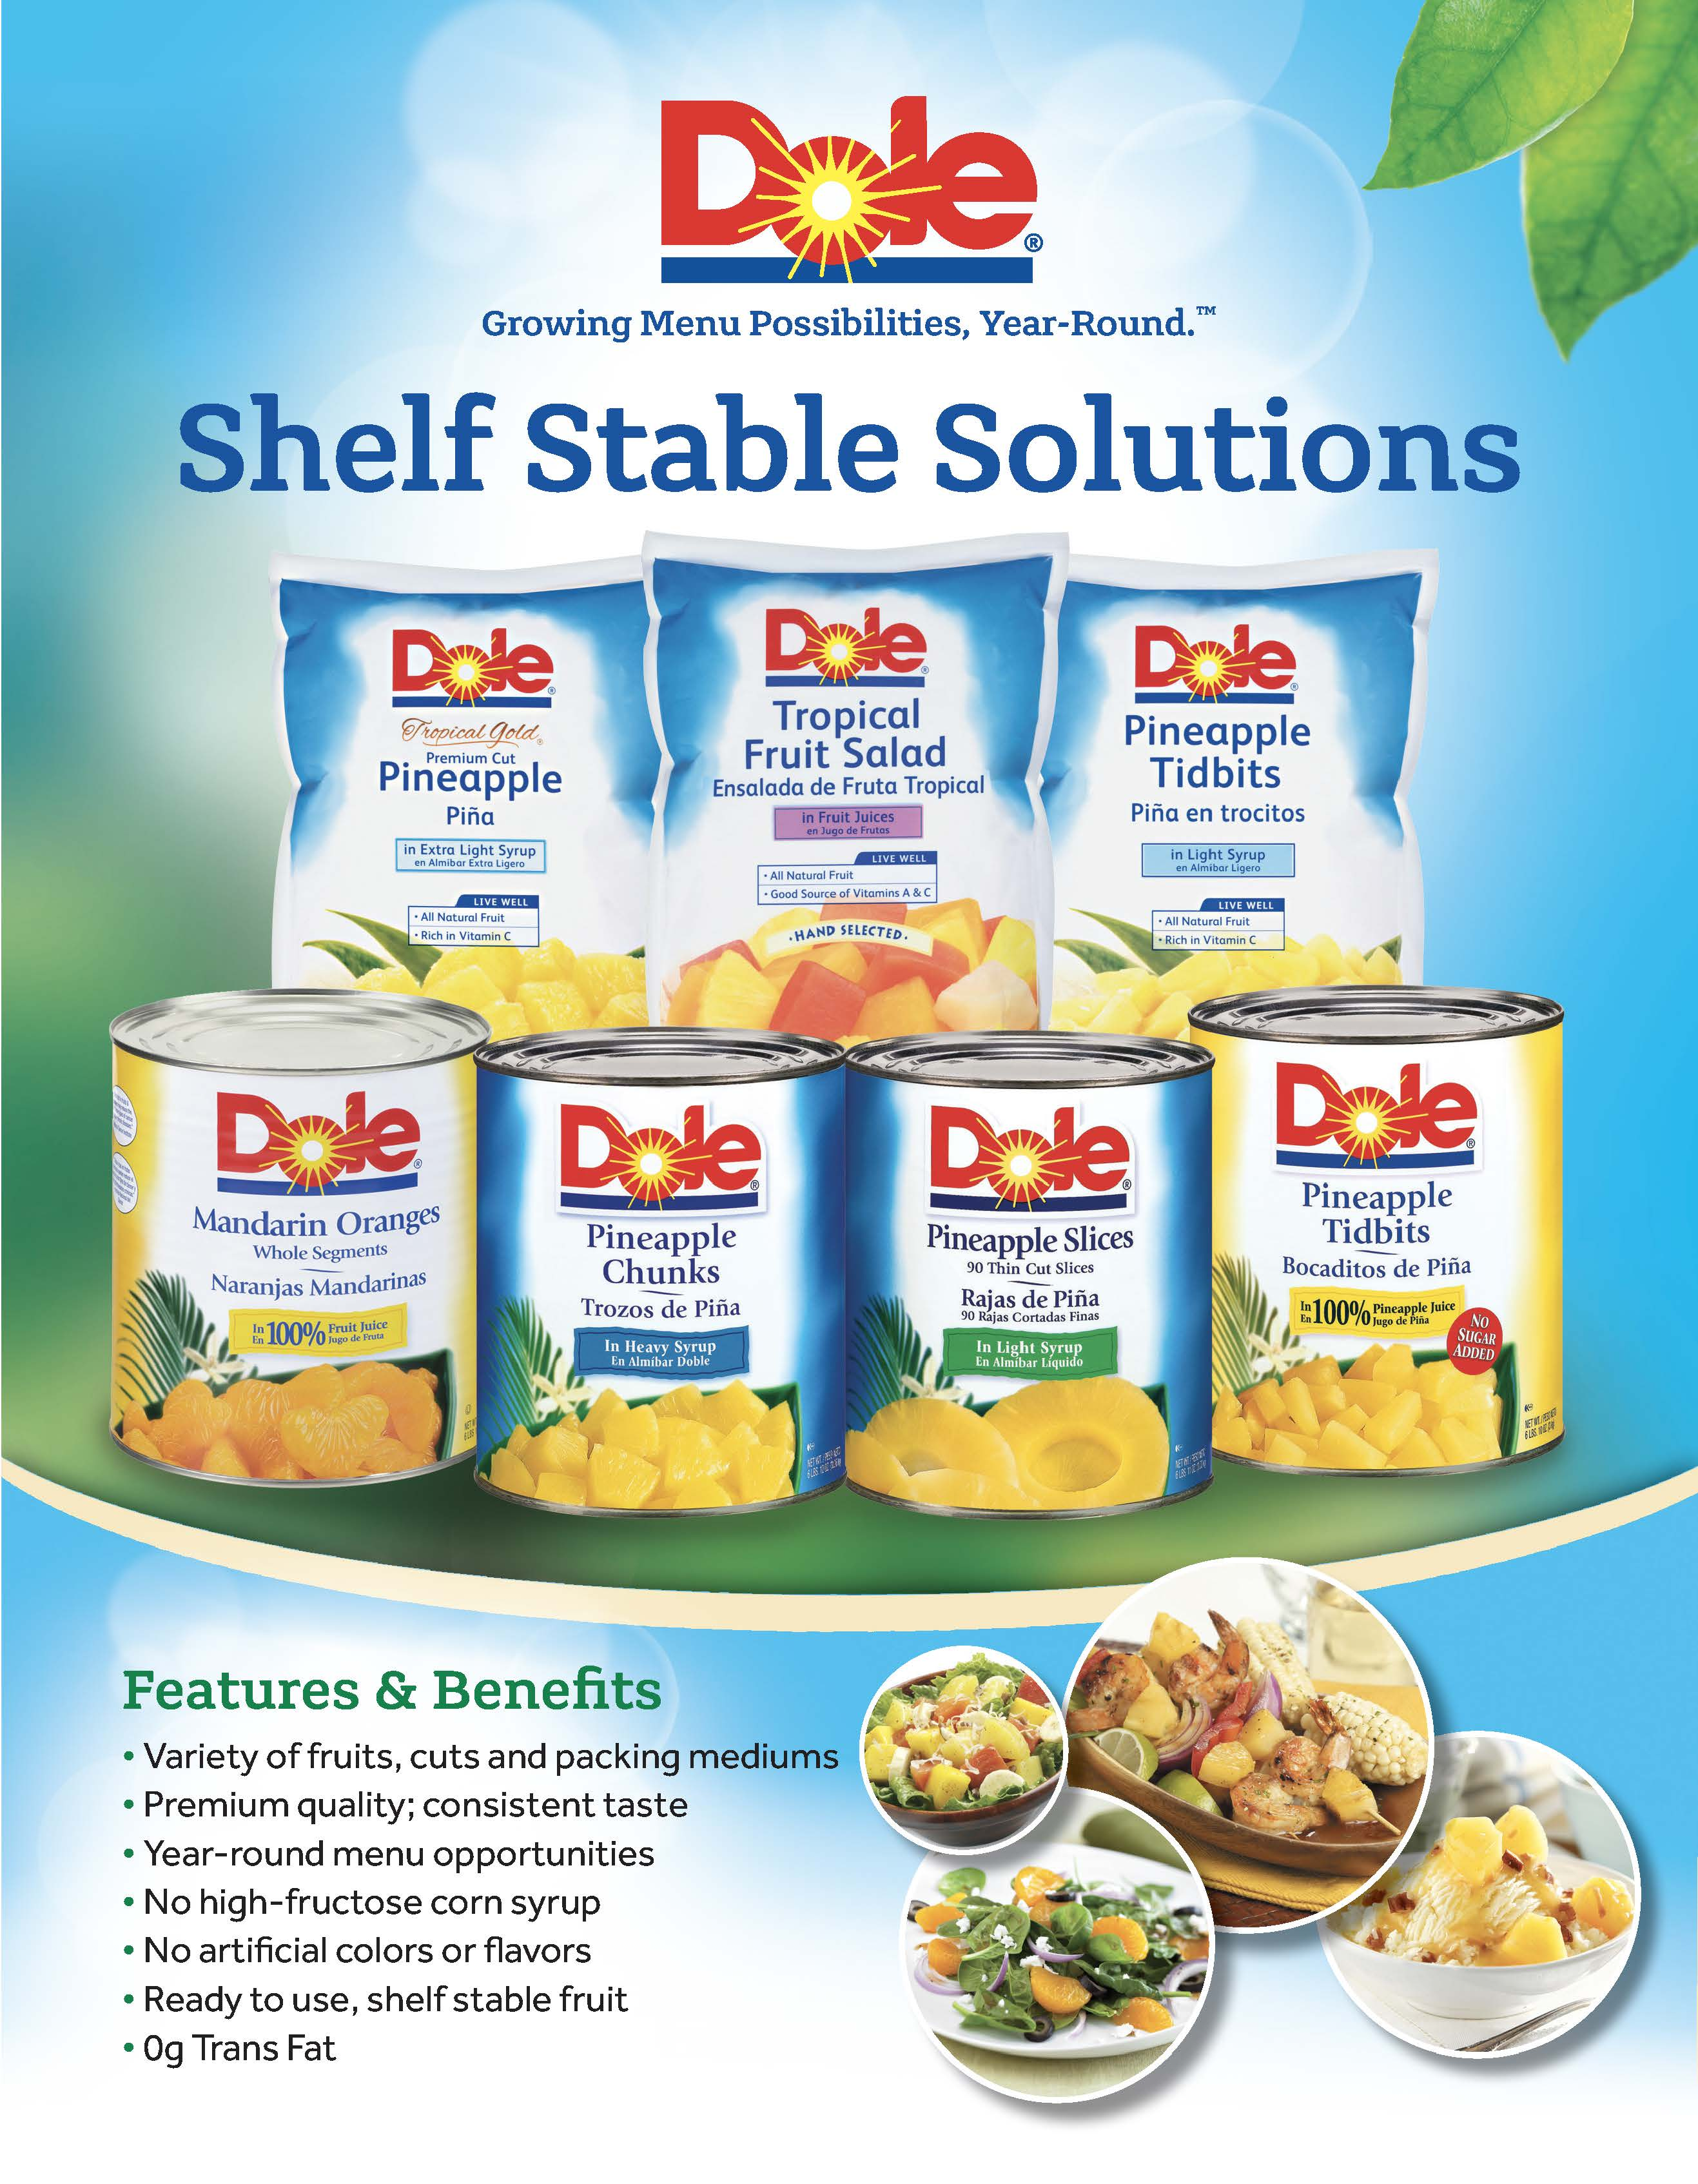 Dole canned fruit ss page 1 tcc00q